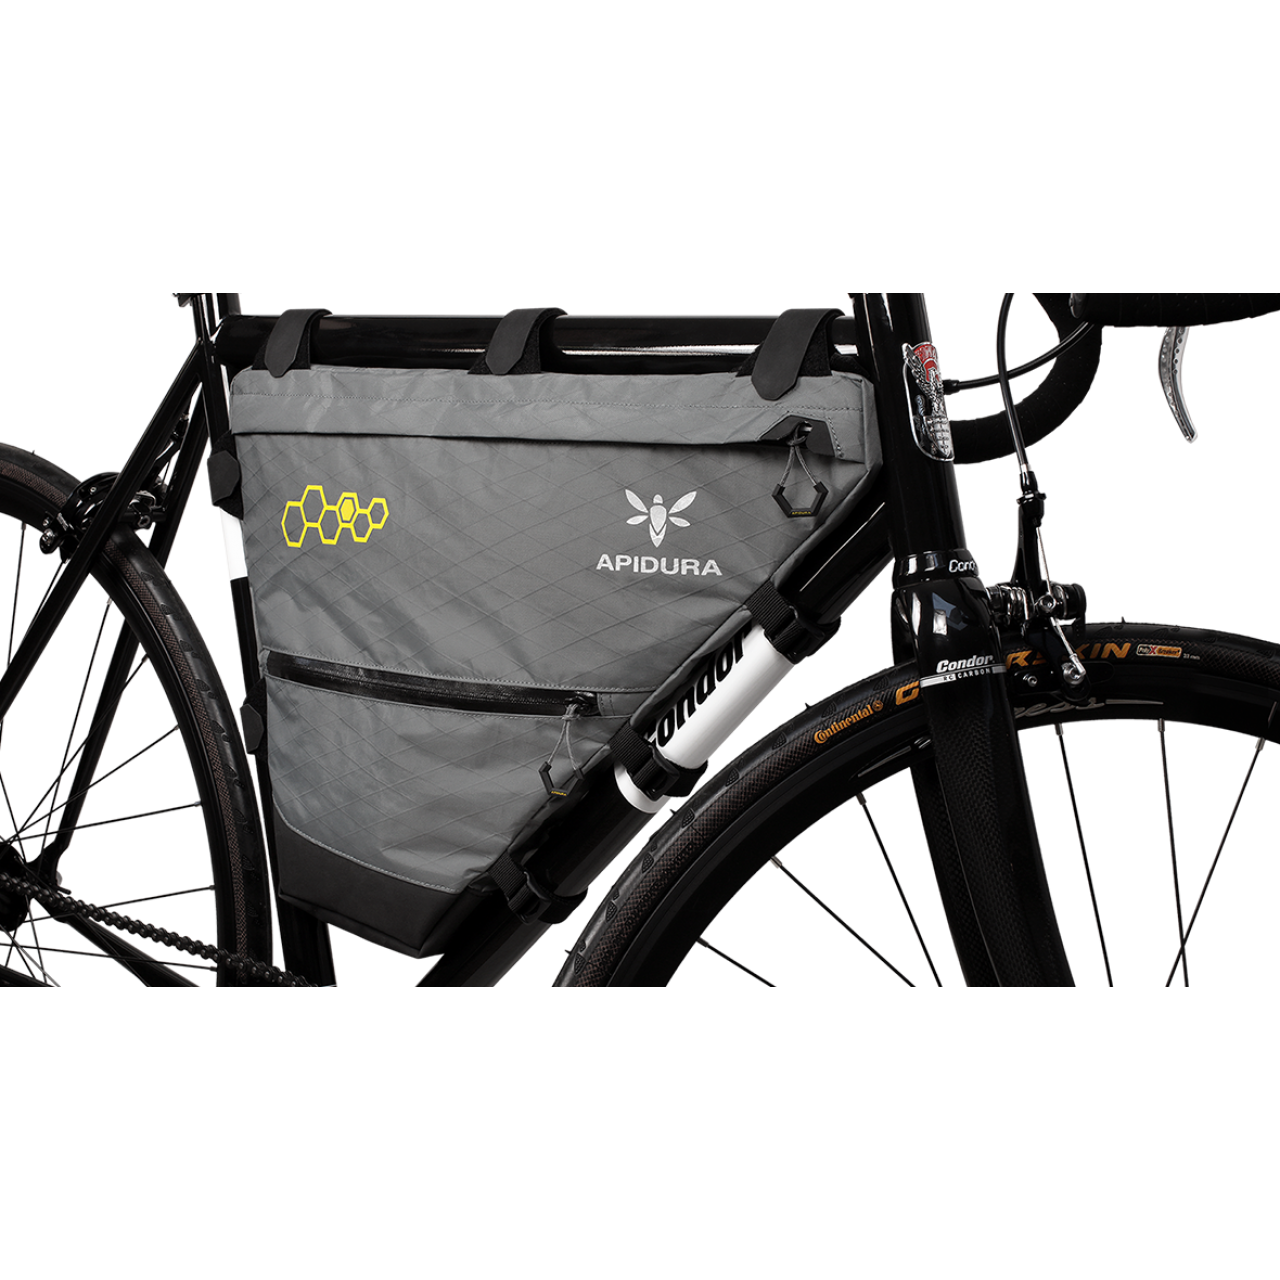 Apidura - Backcountry Full Frame Pack Rahmentasche - 12 L, 154,90 €